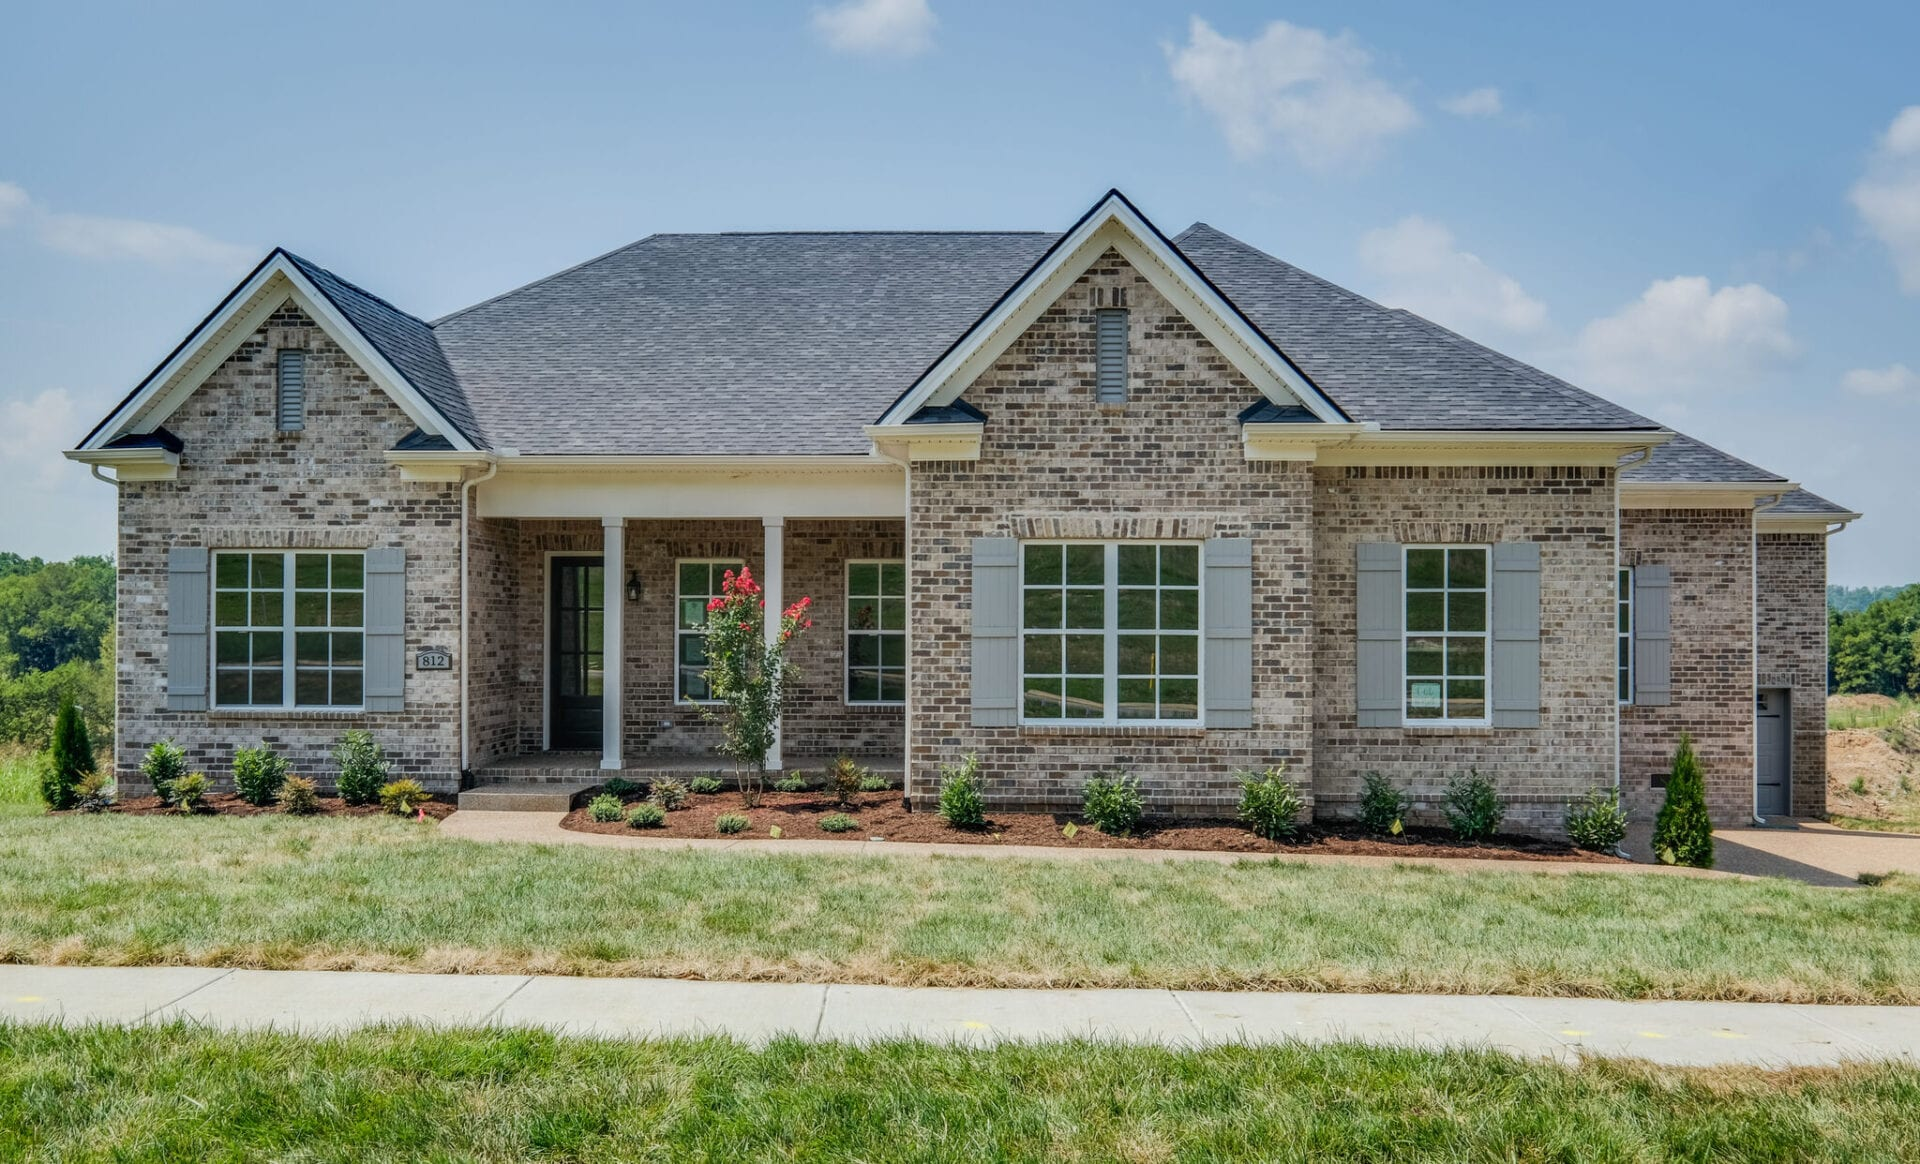 Nashville Ranch style homes by Middle Tennessee Home Ranch Builder.